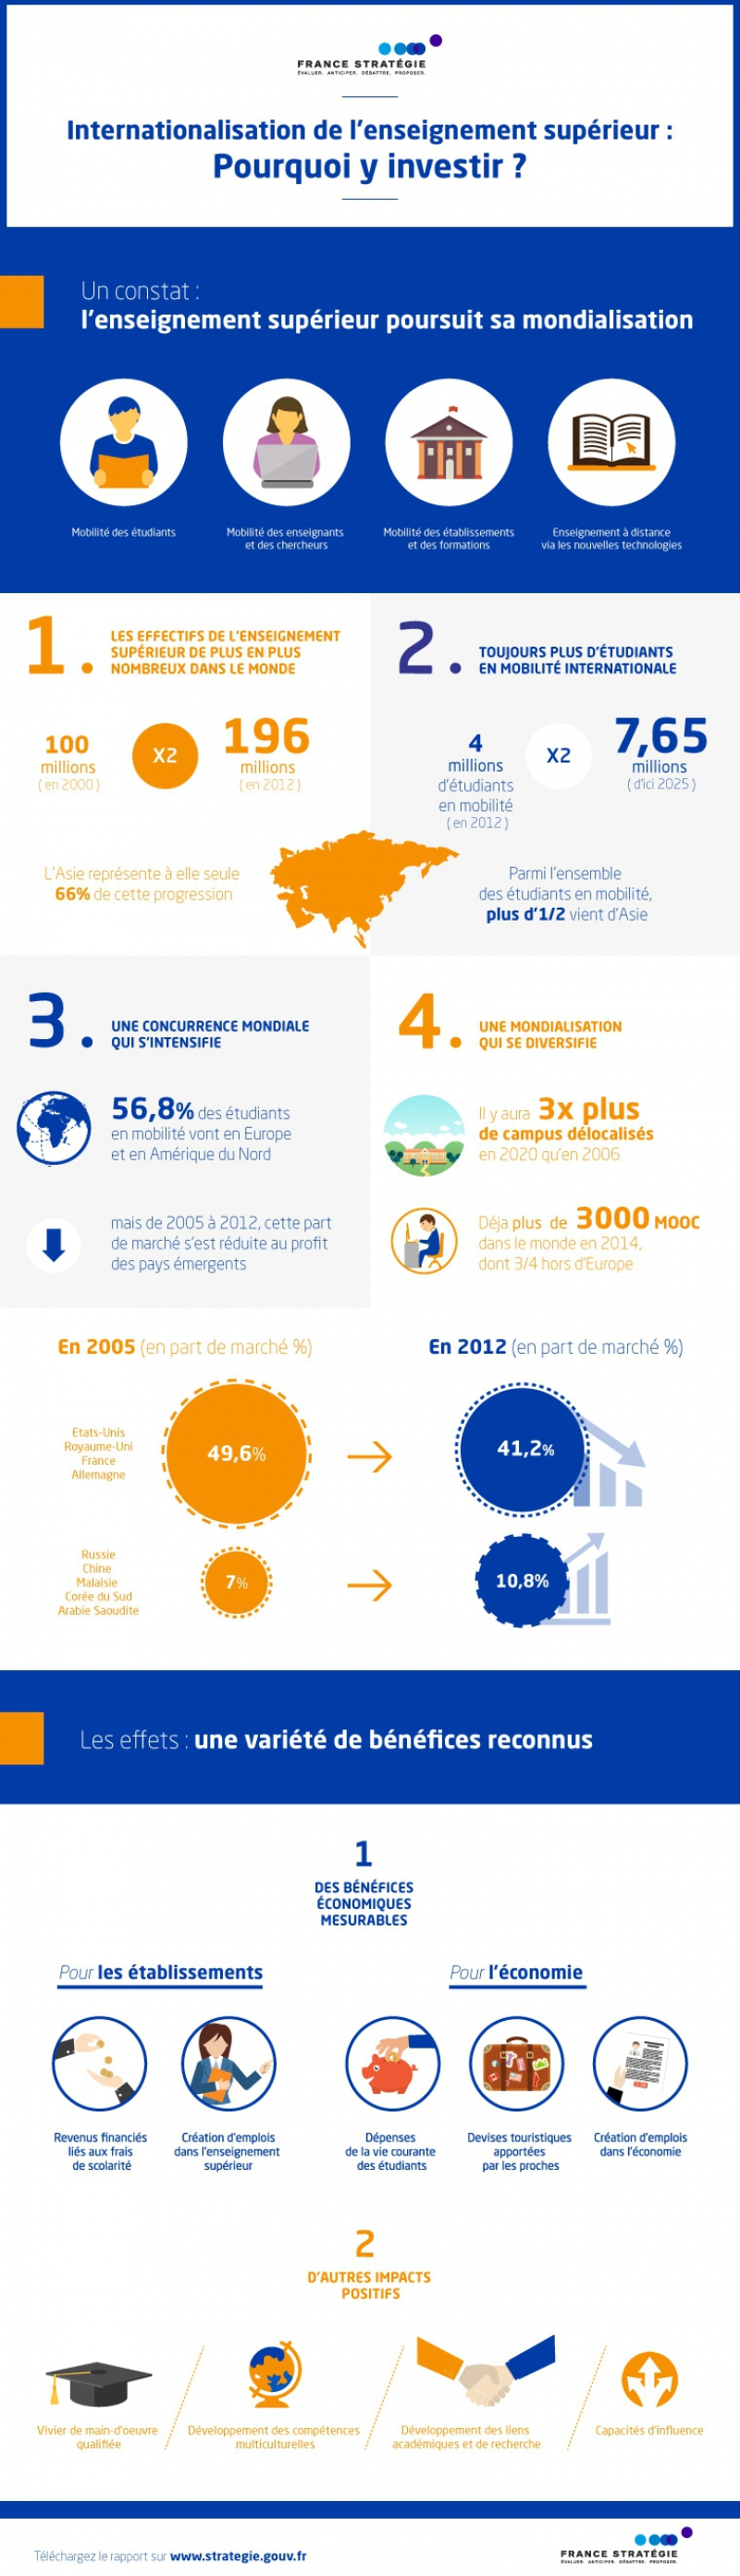 infographie_internationalisation1_vf